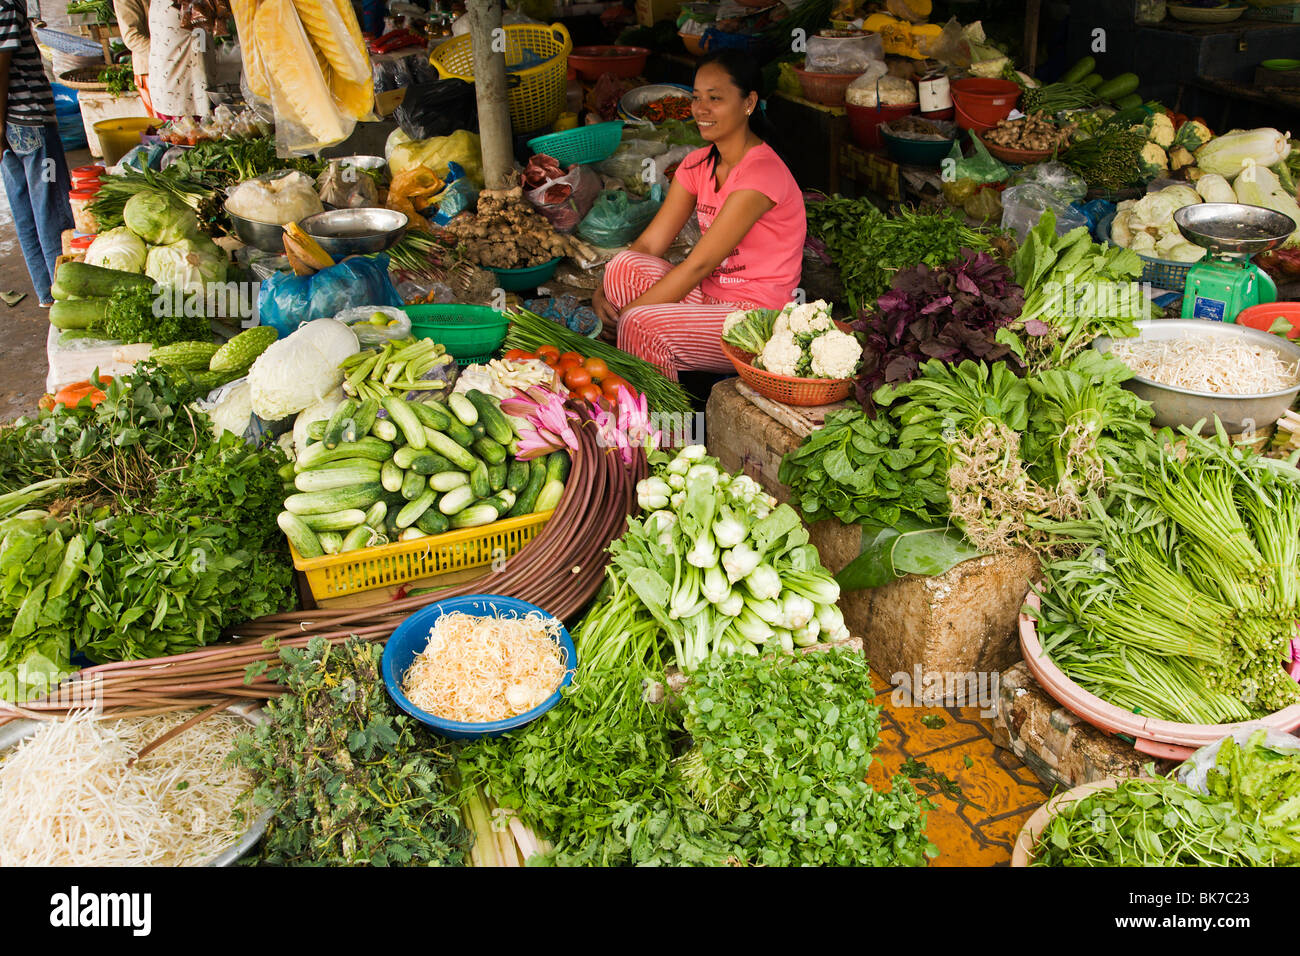 Young woman sitting in her vegetable stall in the daily market in the Vietnam Mekong Delta town of Ha Tien - Stock Image